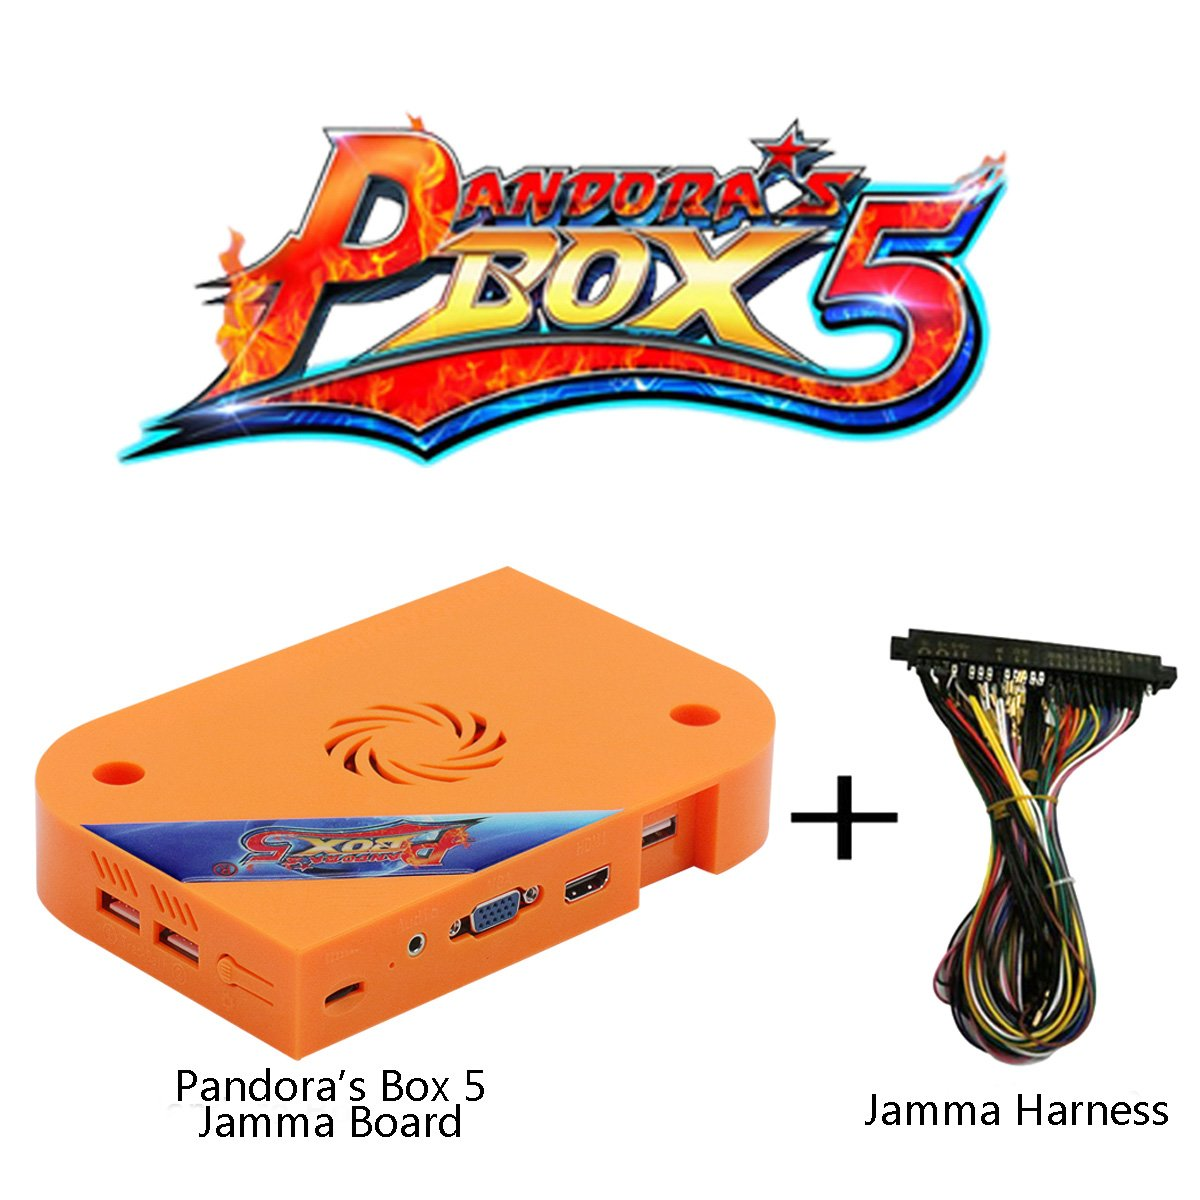 Wisamic Pandora's Box 5 Jamma Board PCB with Jamma Harness, 1280x720 Full HD, Upgraded CPU etc VGA HDMI Output for Arcade Cabinet, No Games Included- Orange